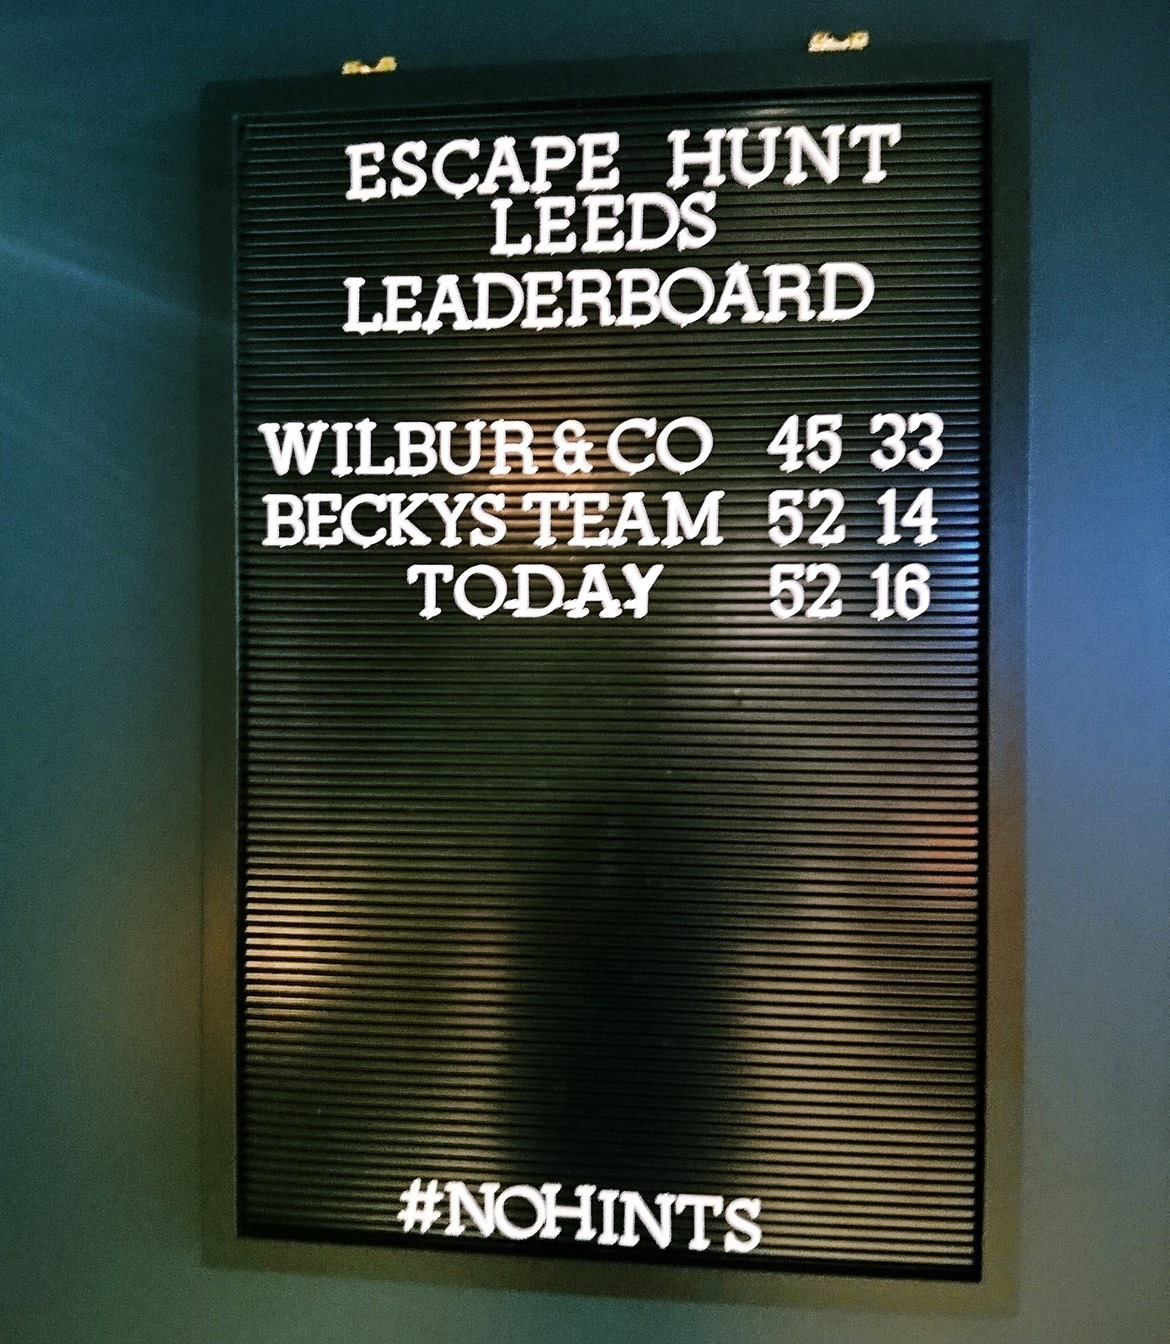 Top 3 leader board after - Our Finest Hour, escape room by Escape Hunt Leeds, review by BeckyBecky Blogs